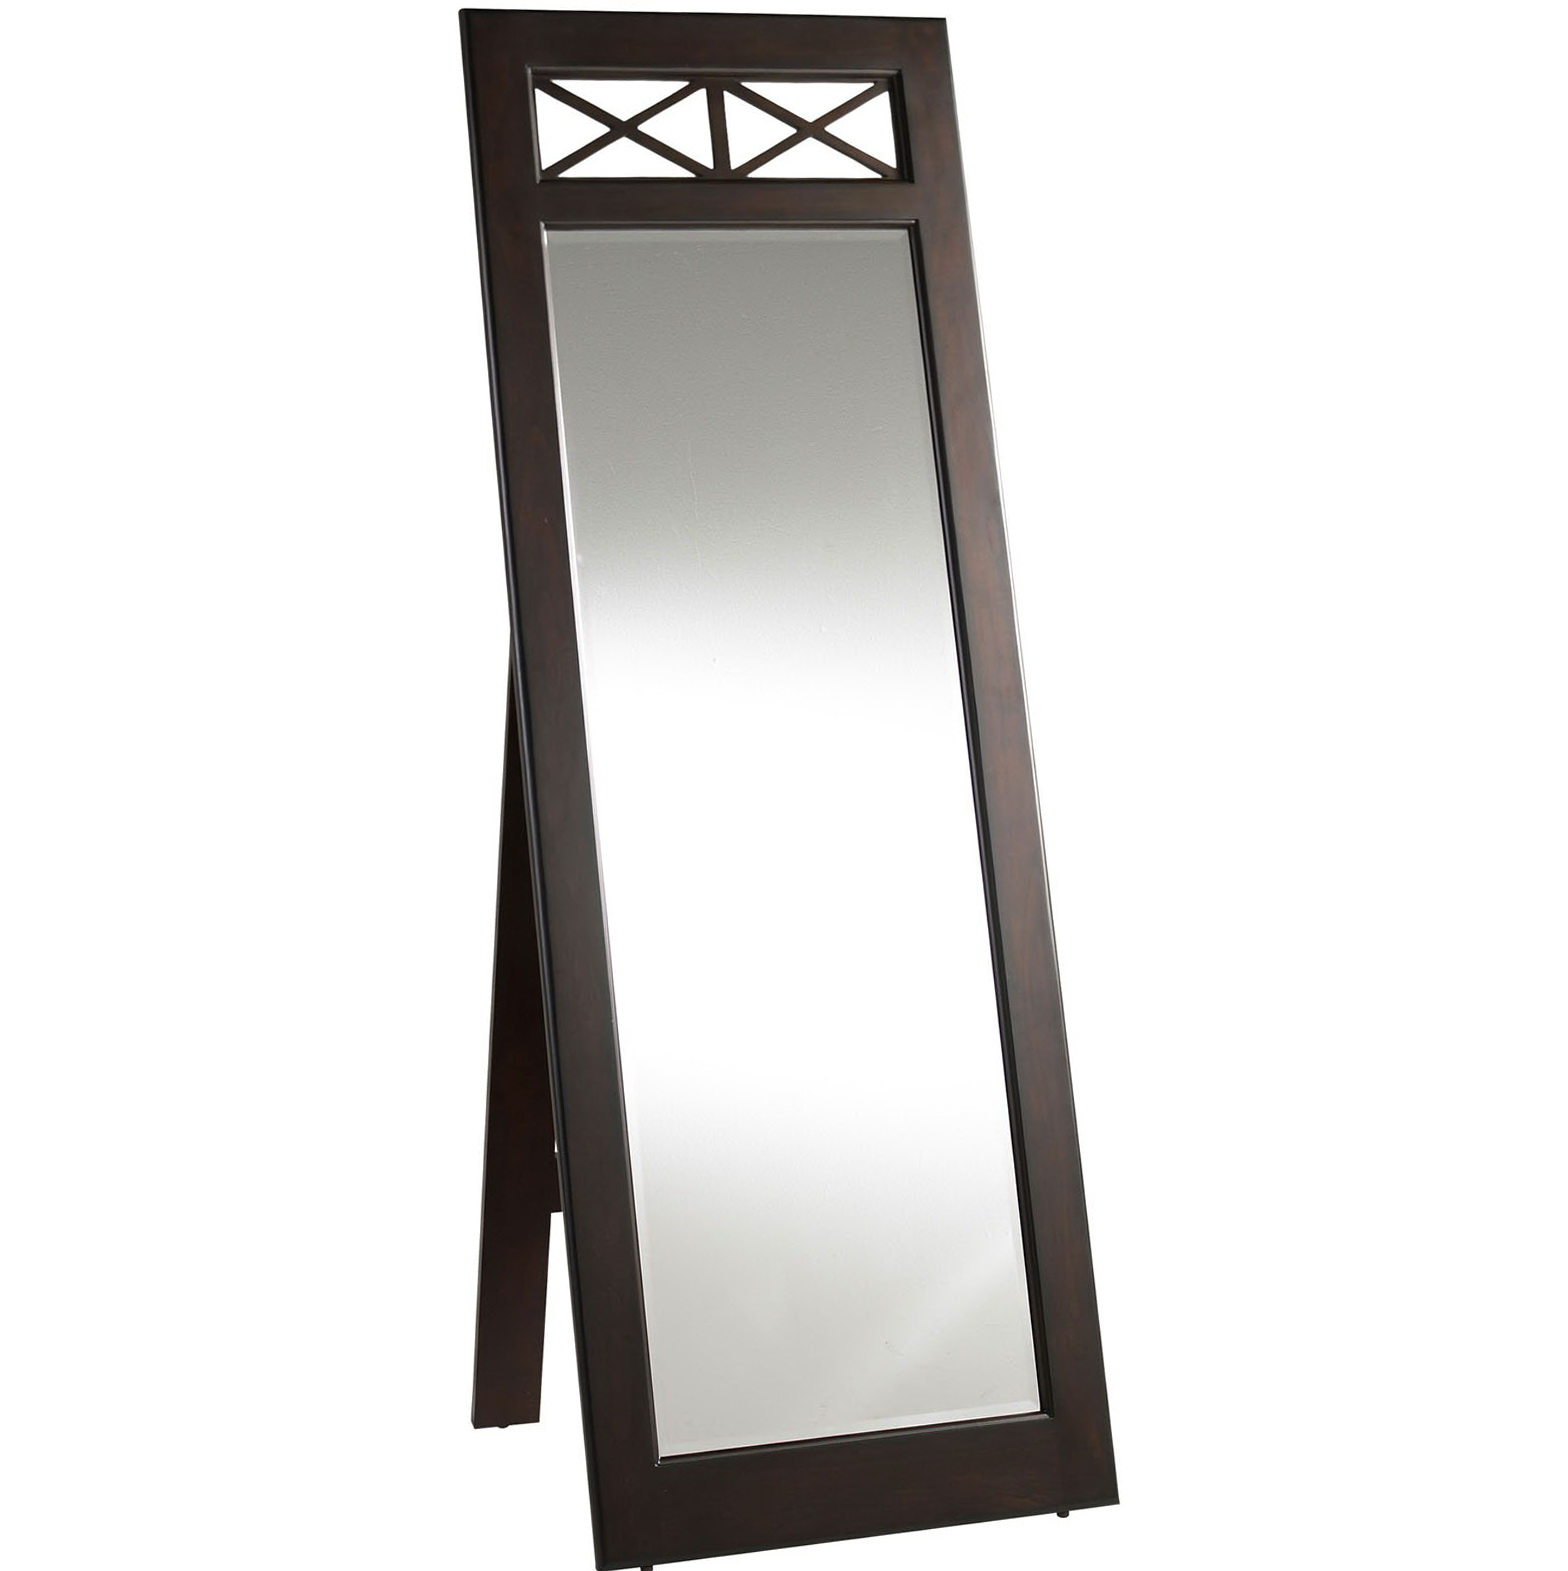 Stand up mirrors for sale home design ideas for Mirrors for sale